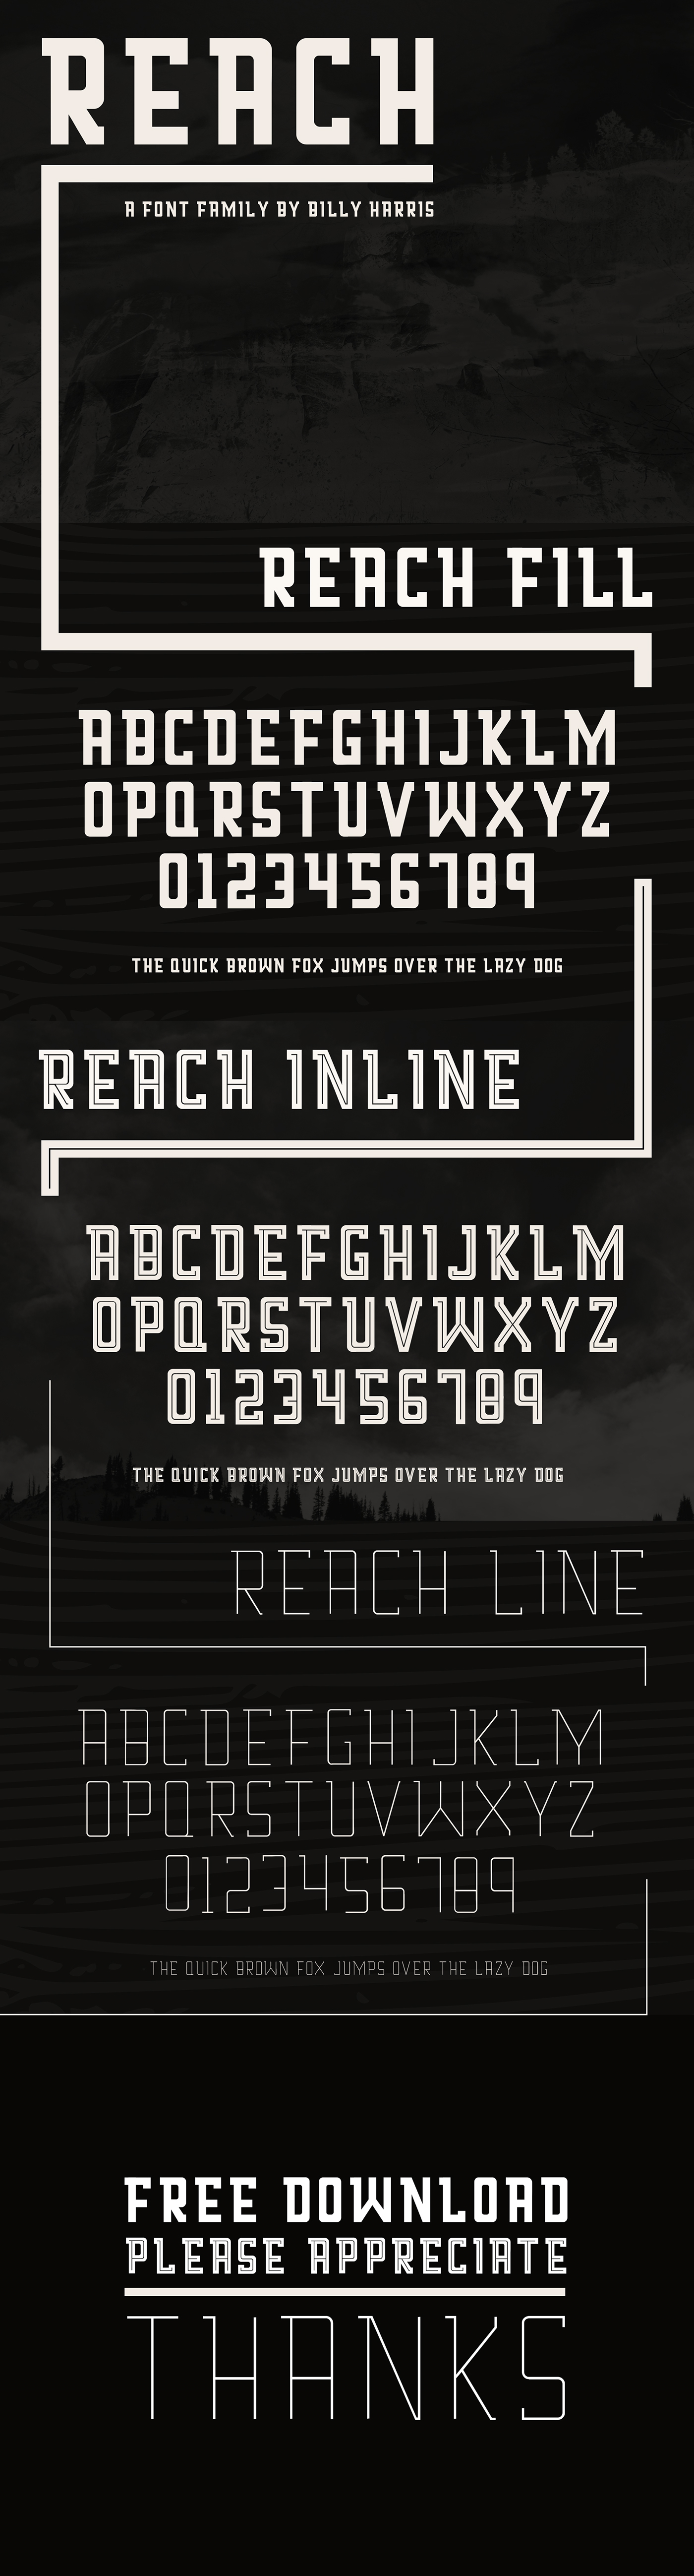 Reach Font Family